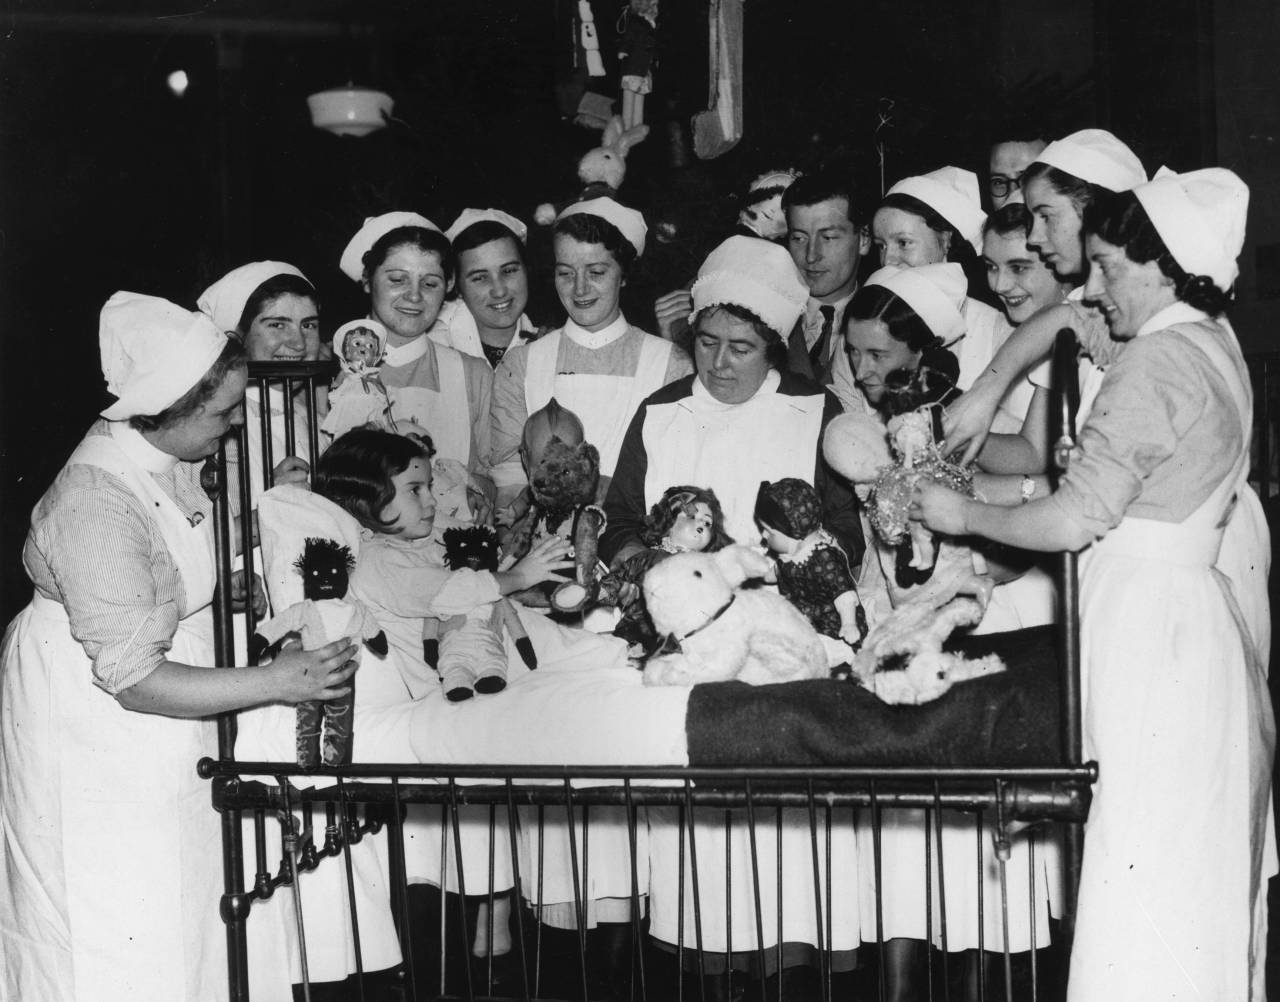 21st December 1937: Nurses at the Royal Infirmary in Cardiff's children's ward shower a young patient with toys for Christmas. (Photo by Fox Photos/Getty Images)